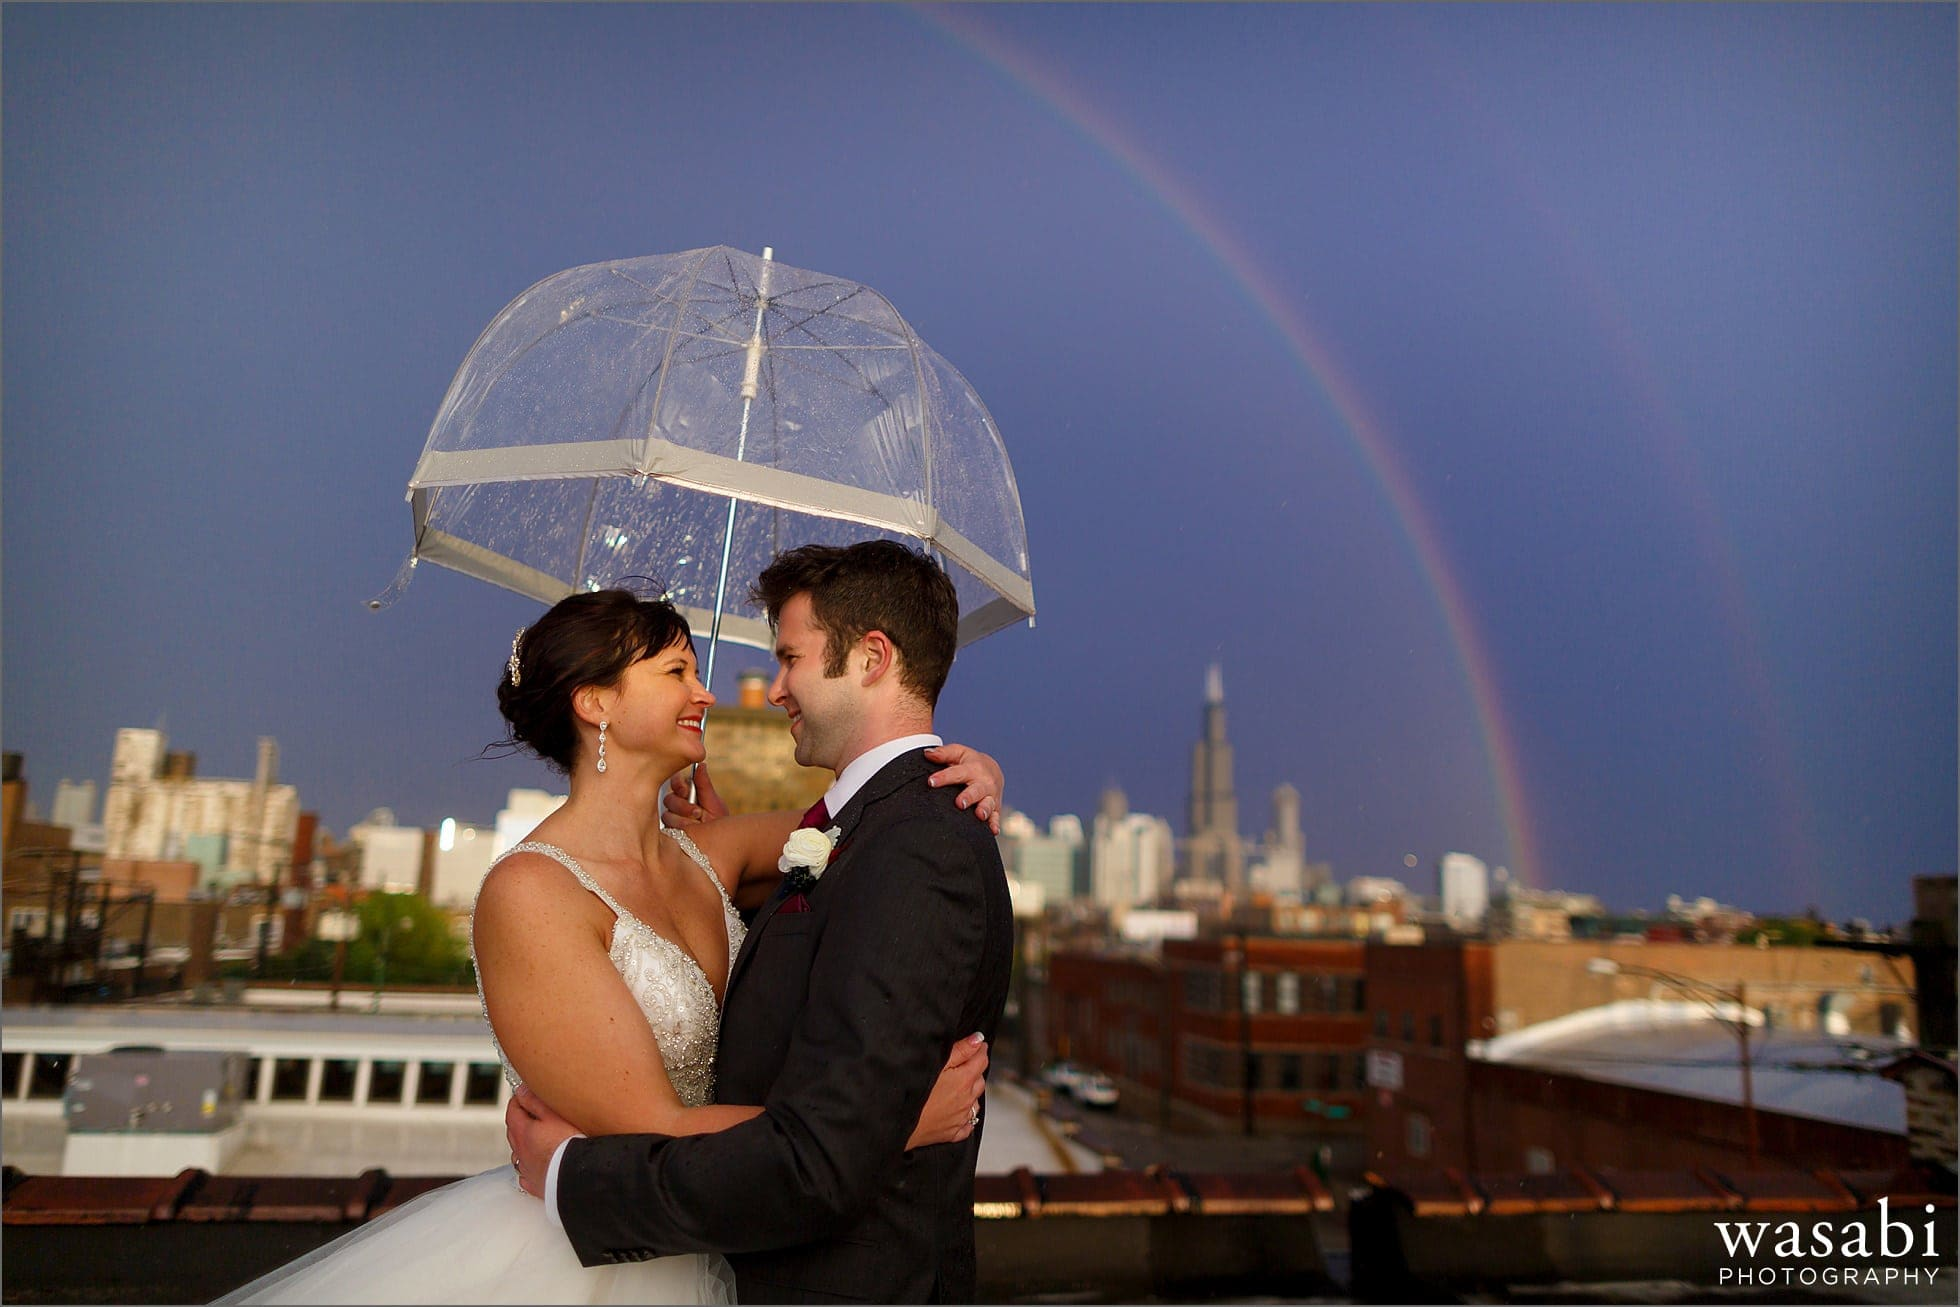 bride and groom pose for a chicago skyline rainbow wedding photo under an umbrella on the rooftop of Room 1520